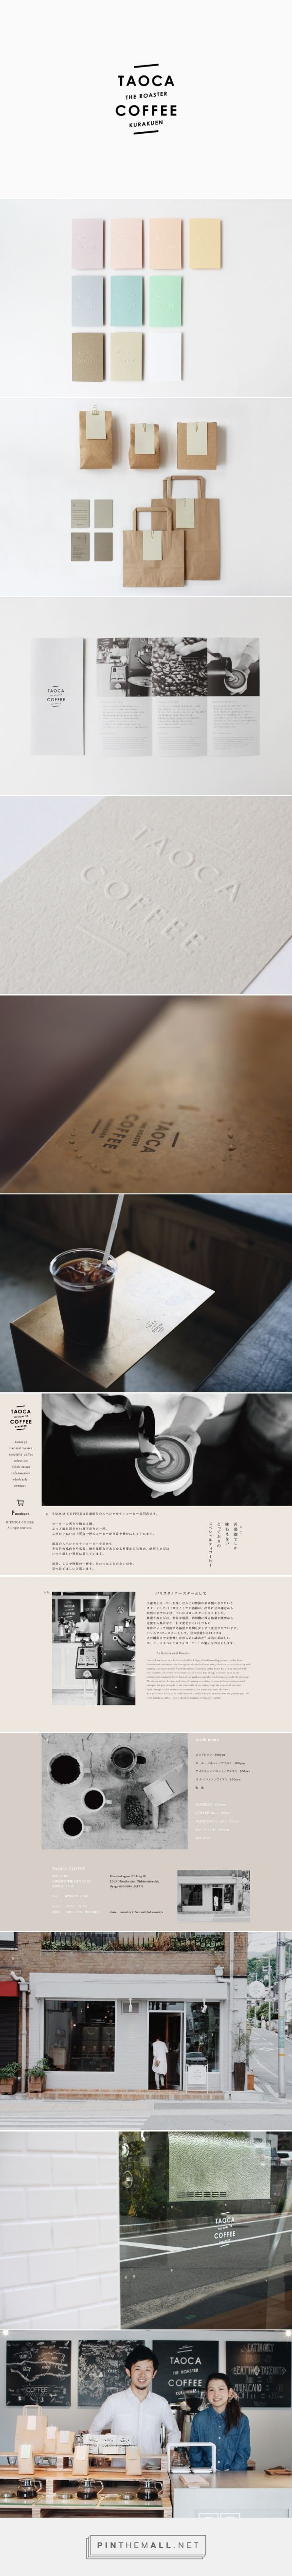 TAOCA COFFEE – 大阪のブランディングデザイン事務所 8otto... - a grouped images picture - Pin Them All